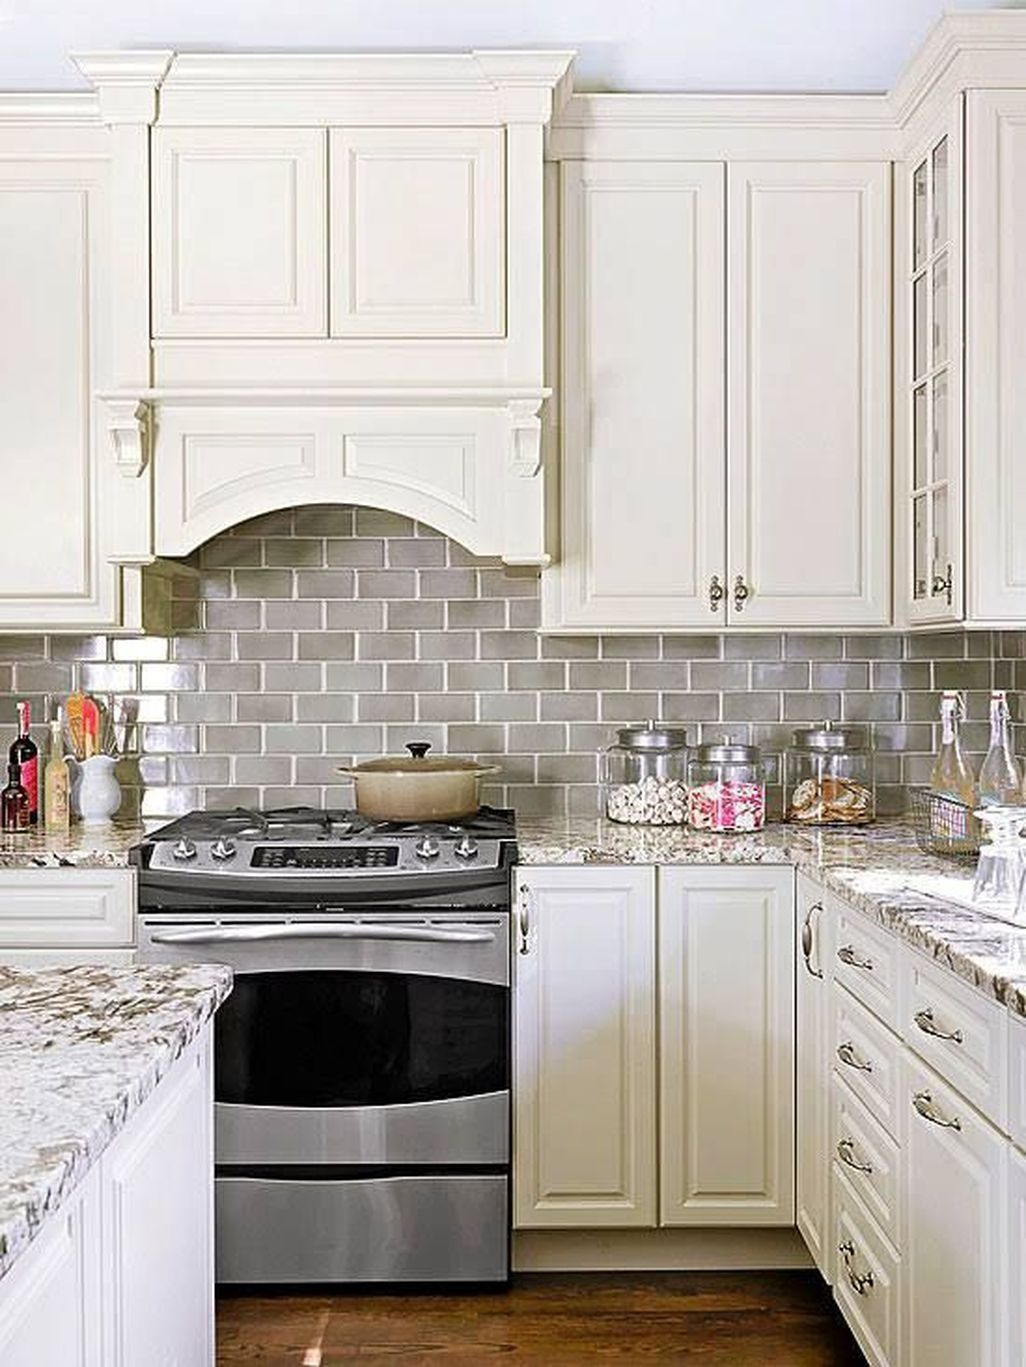 50 Beautiful Kitchen Remodel Backsplash Tile Design Ideas